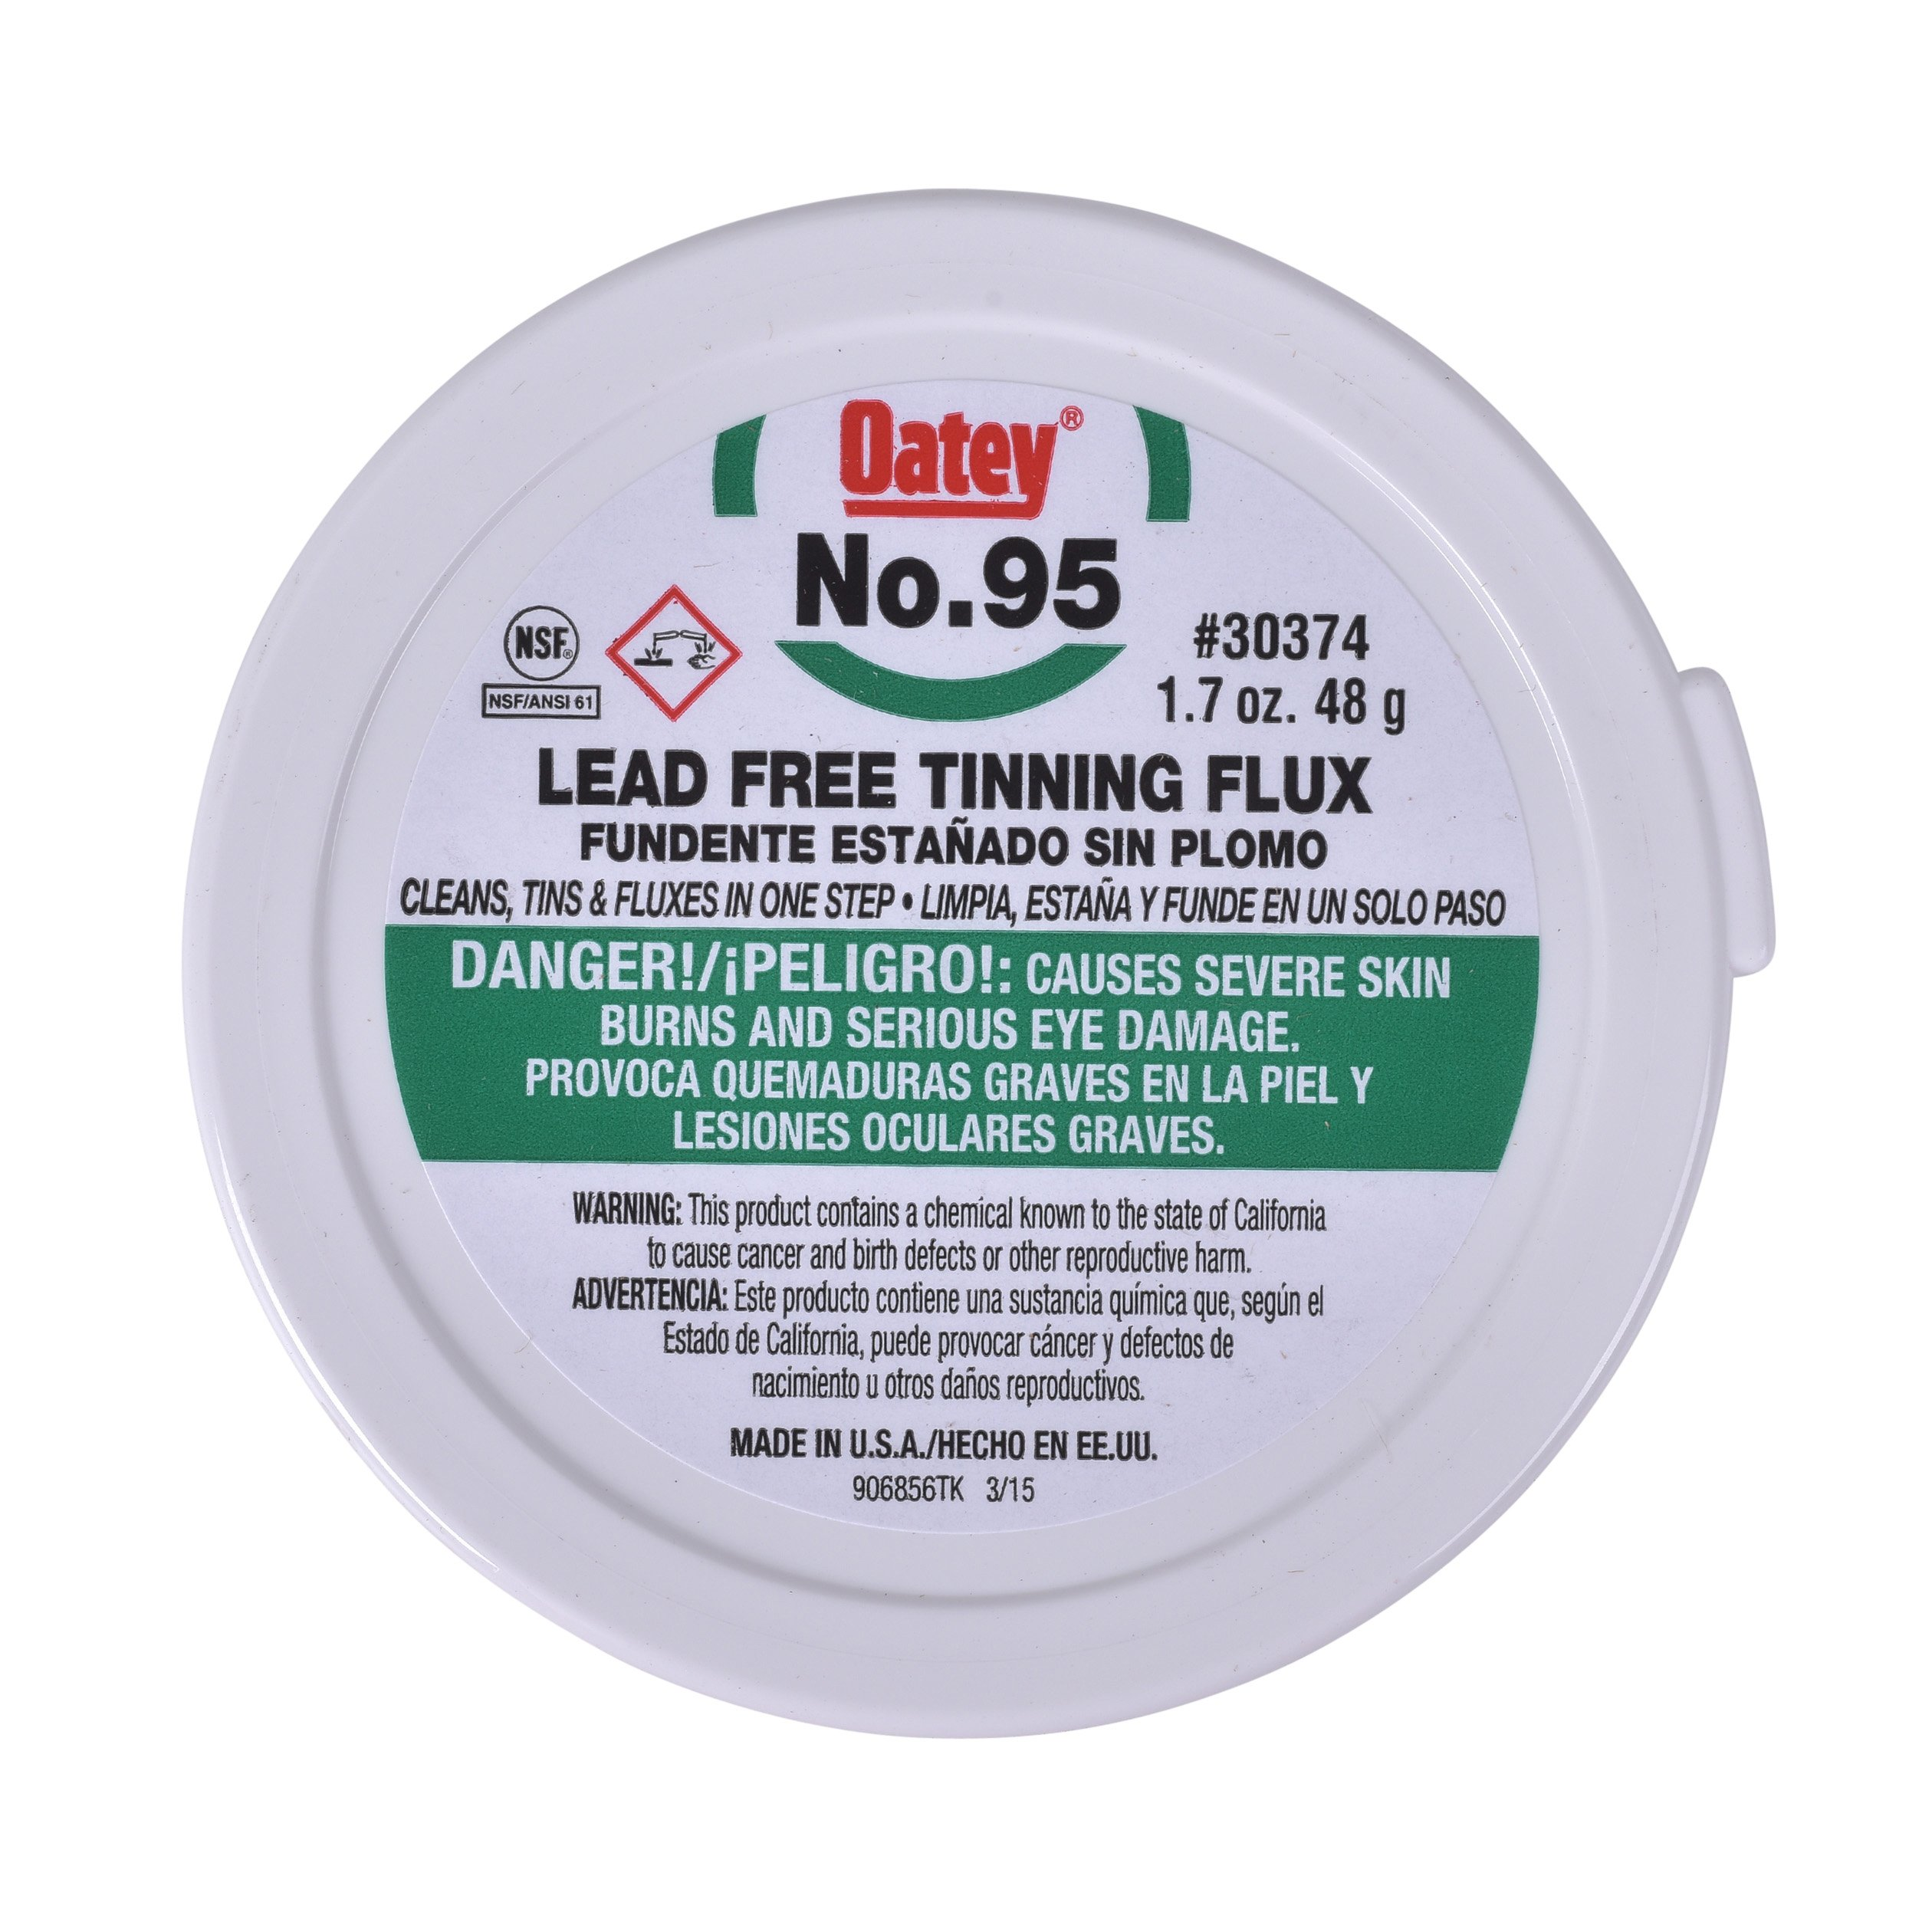 Oatey Company 30374 1.7 Oz #95 Flux product image